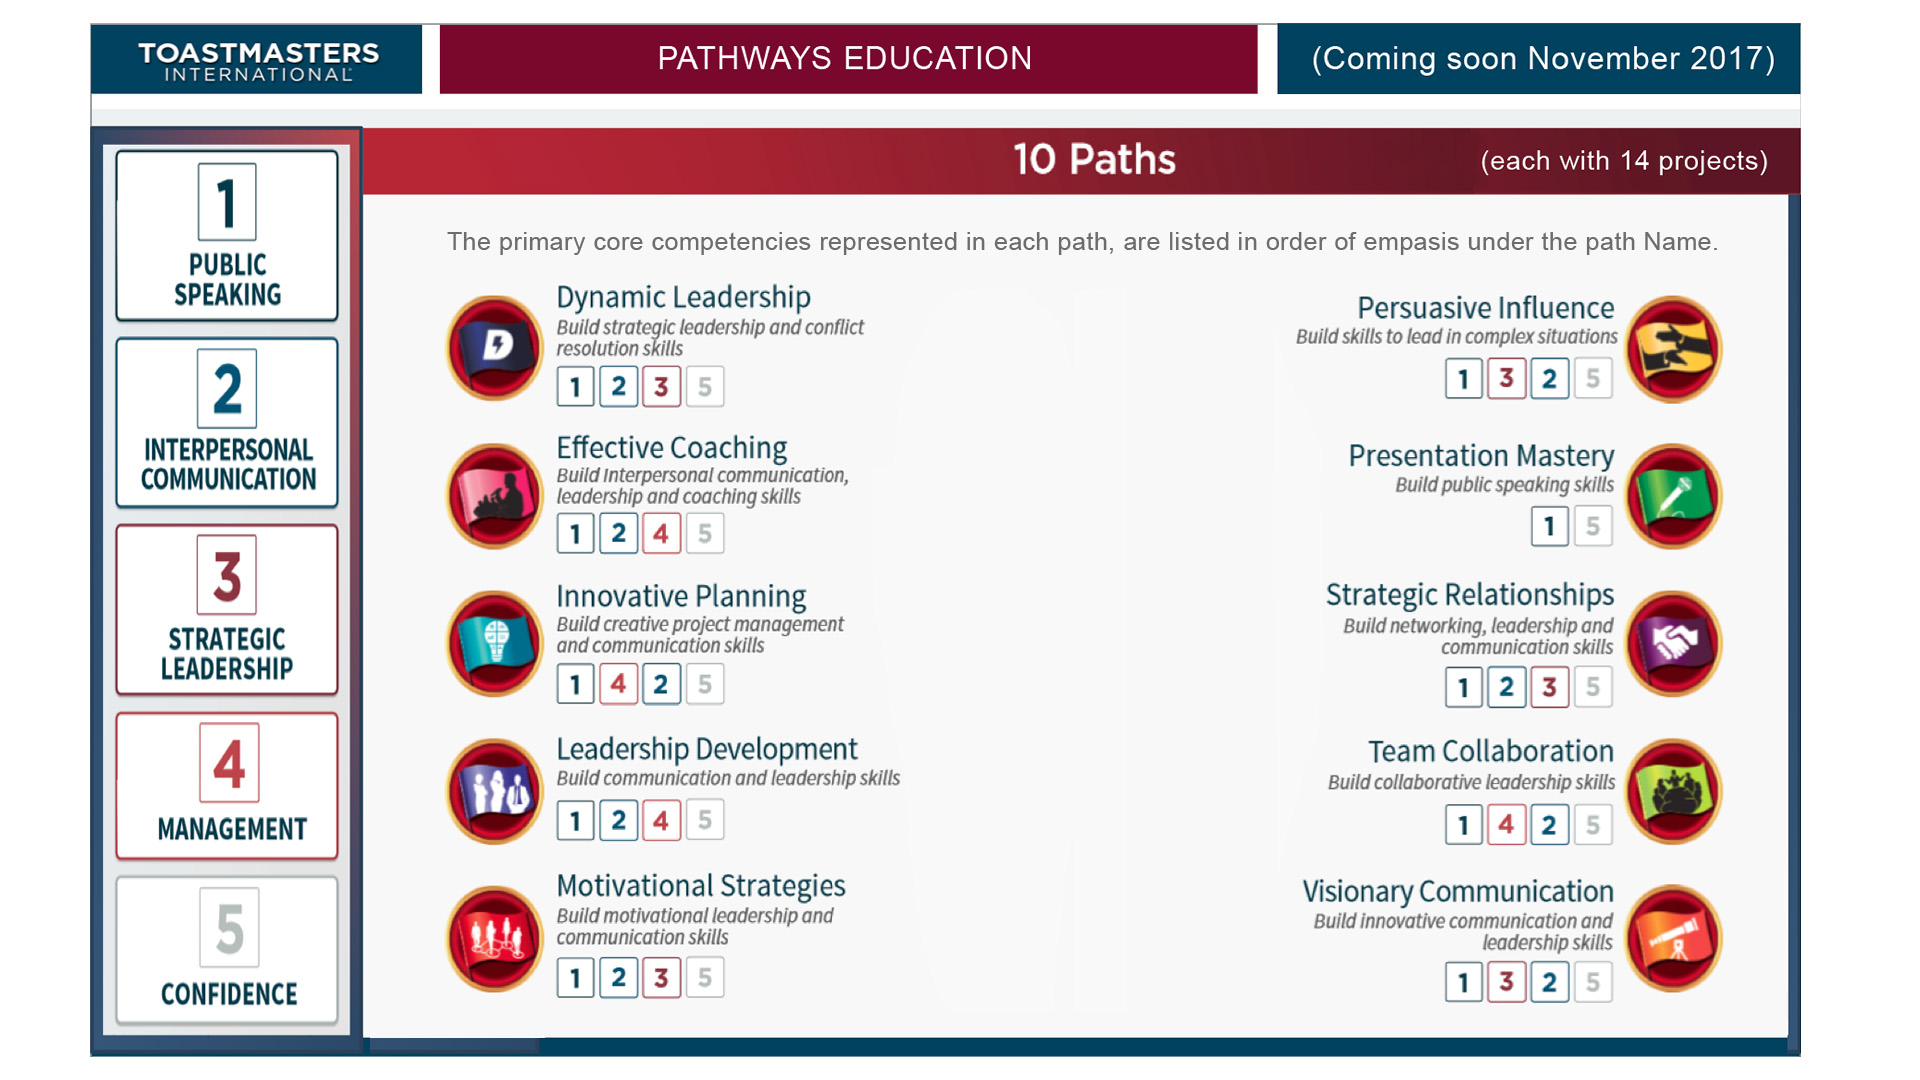 Pathways Education - 10 Learning Paths